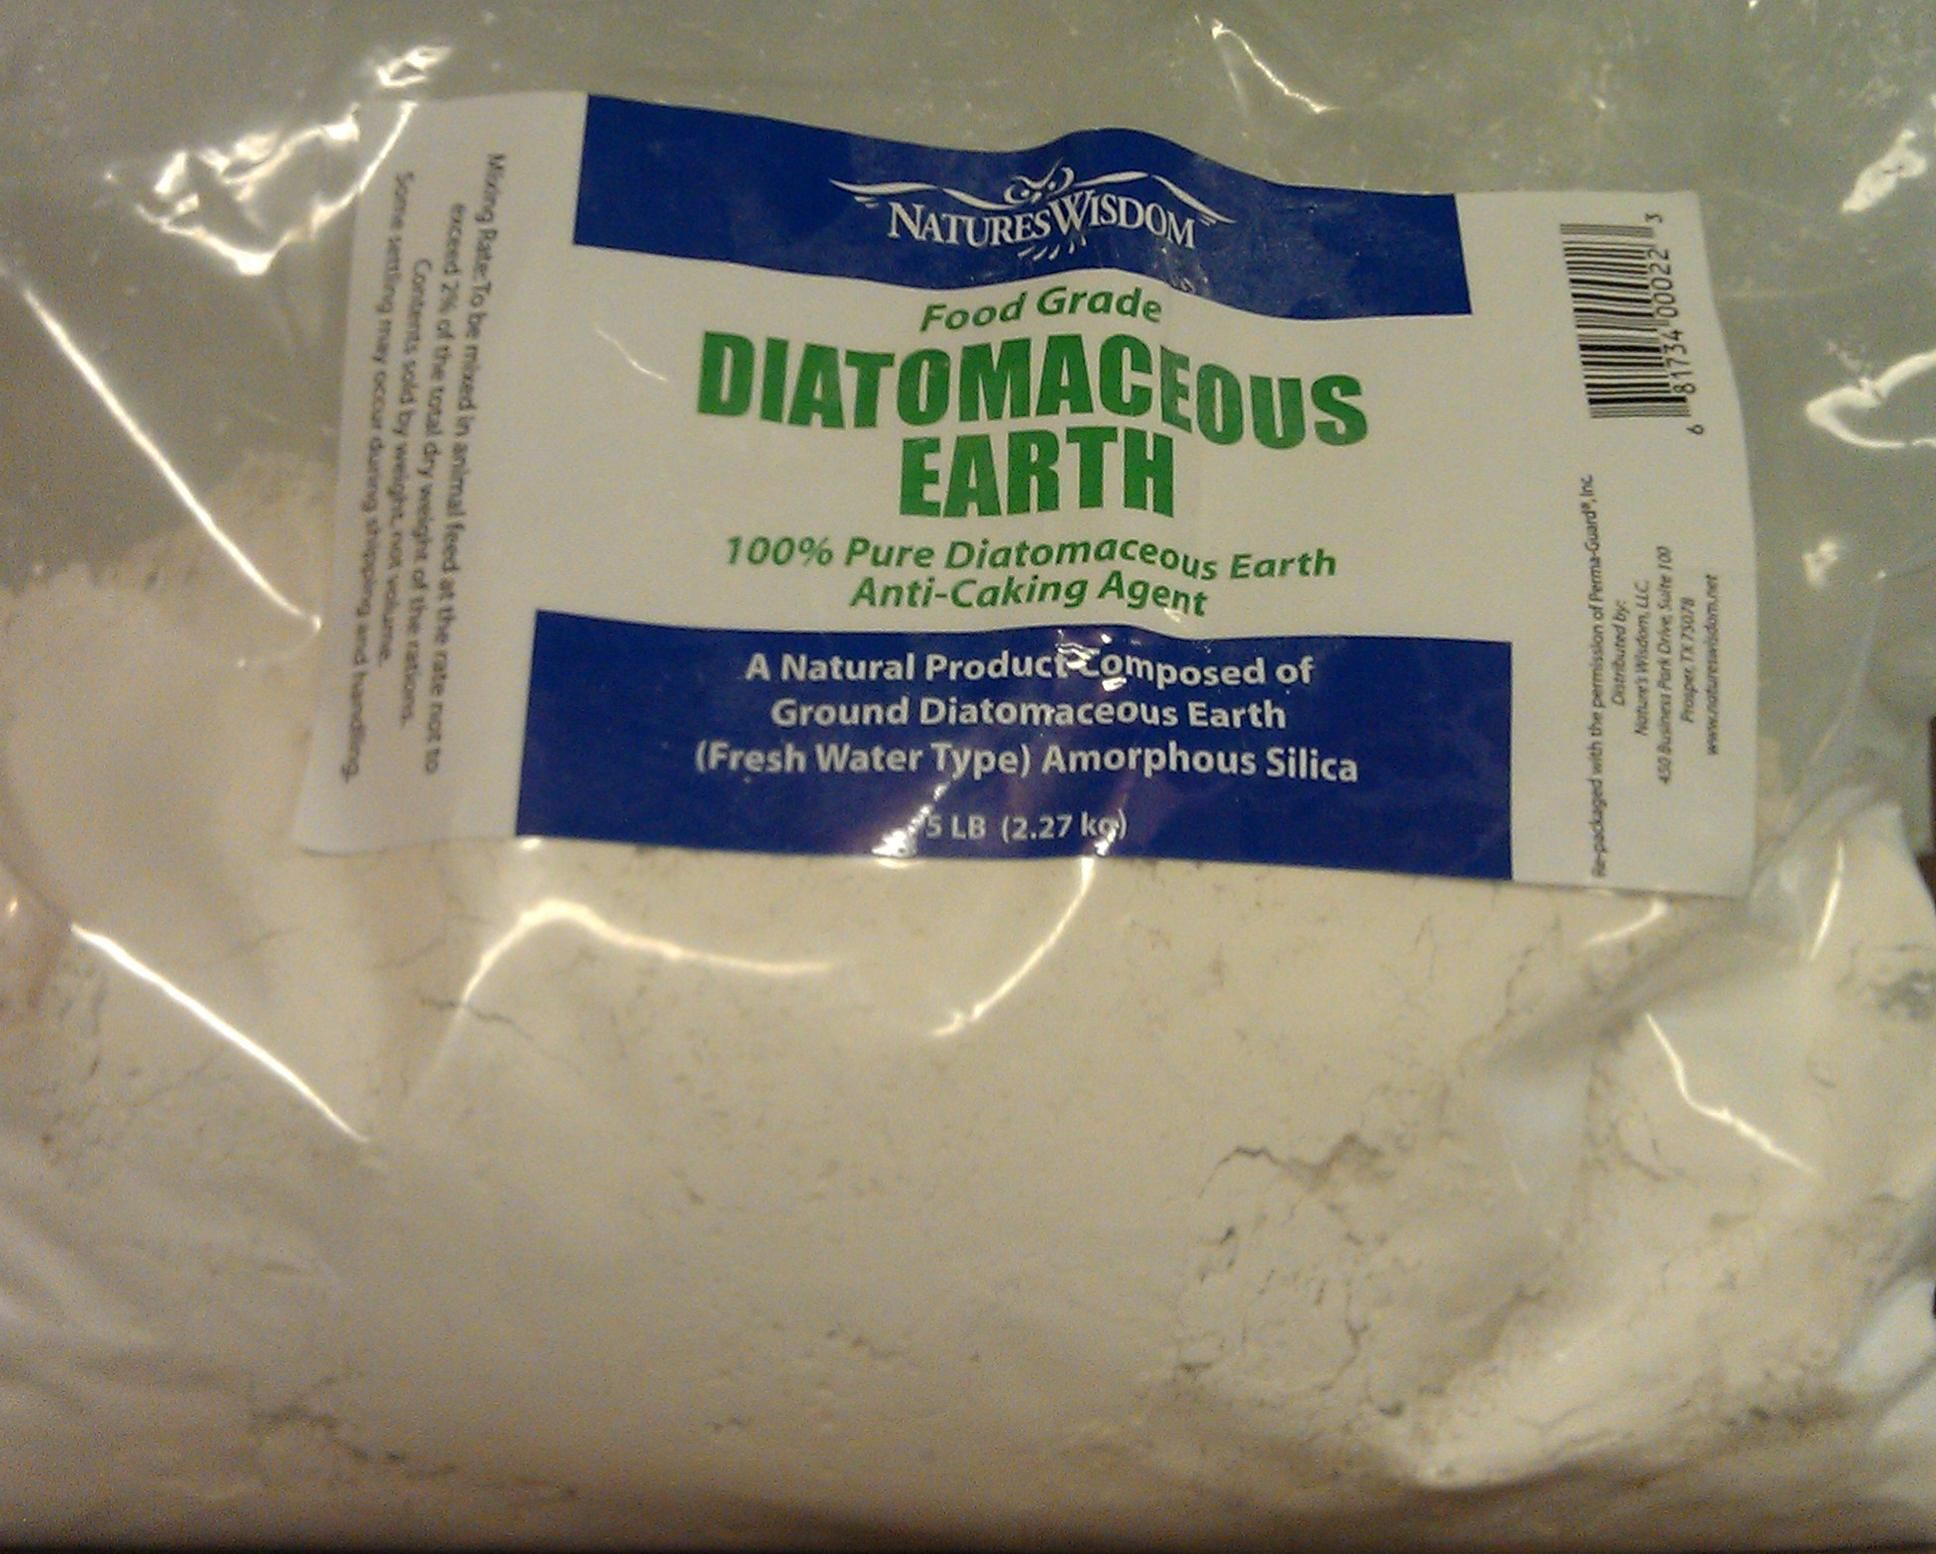 Foodgrade Diatomaceous Earth, commonly called Fossil